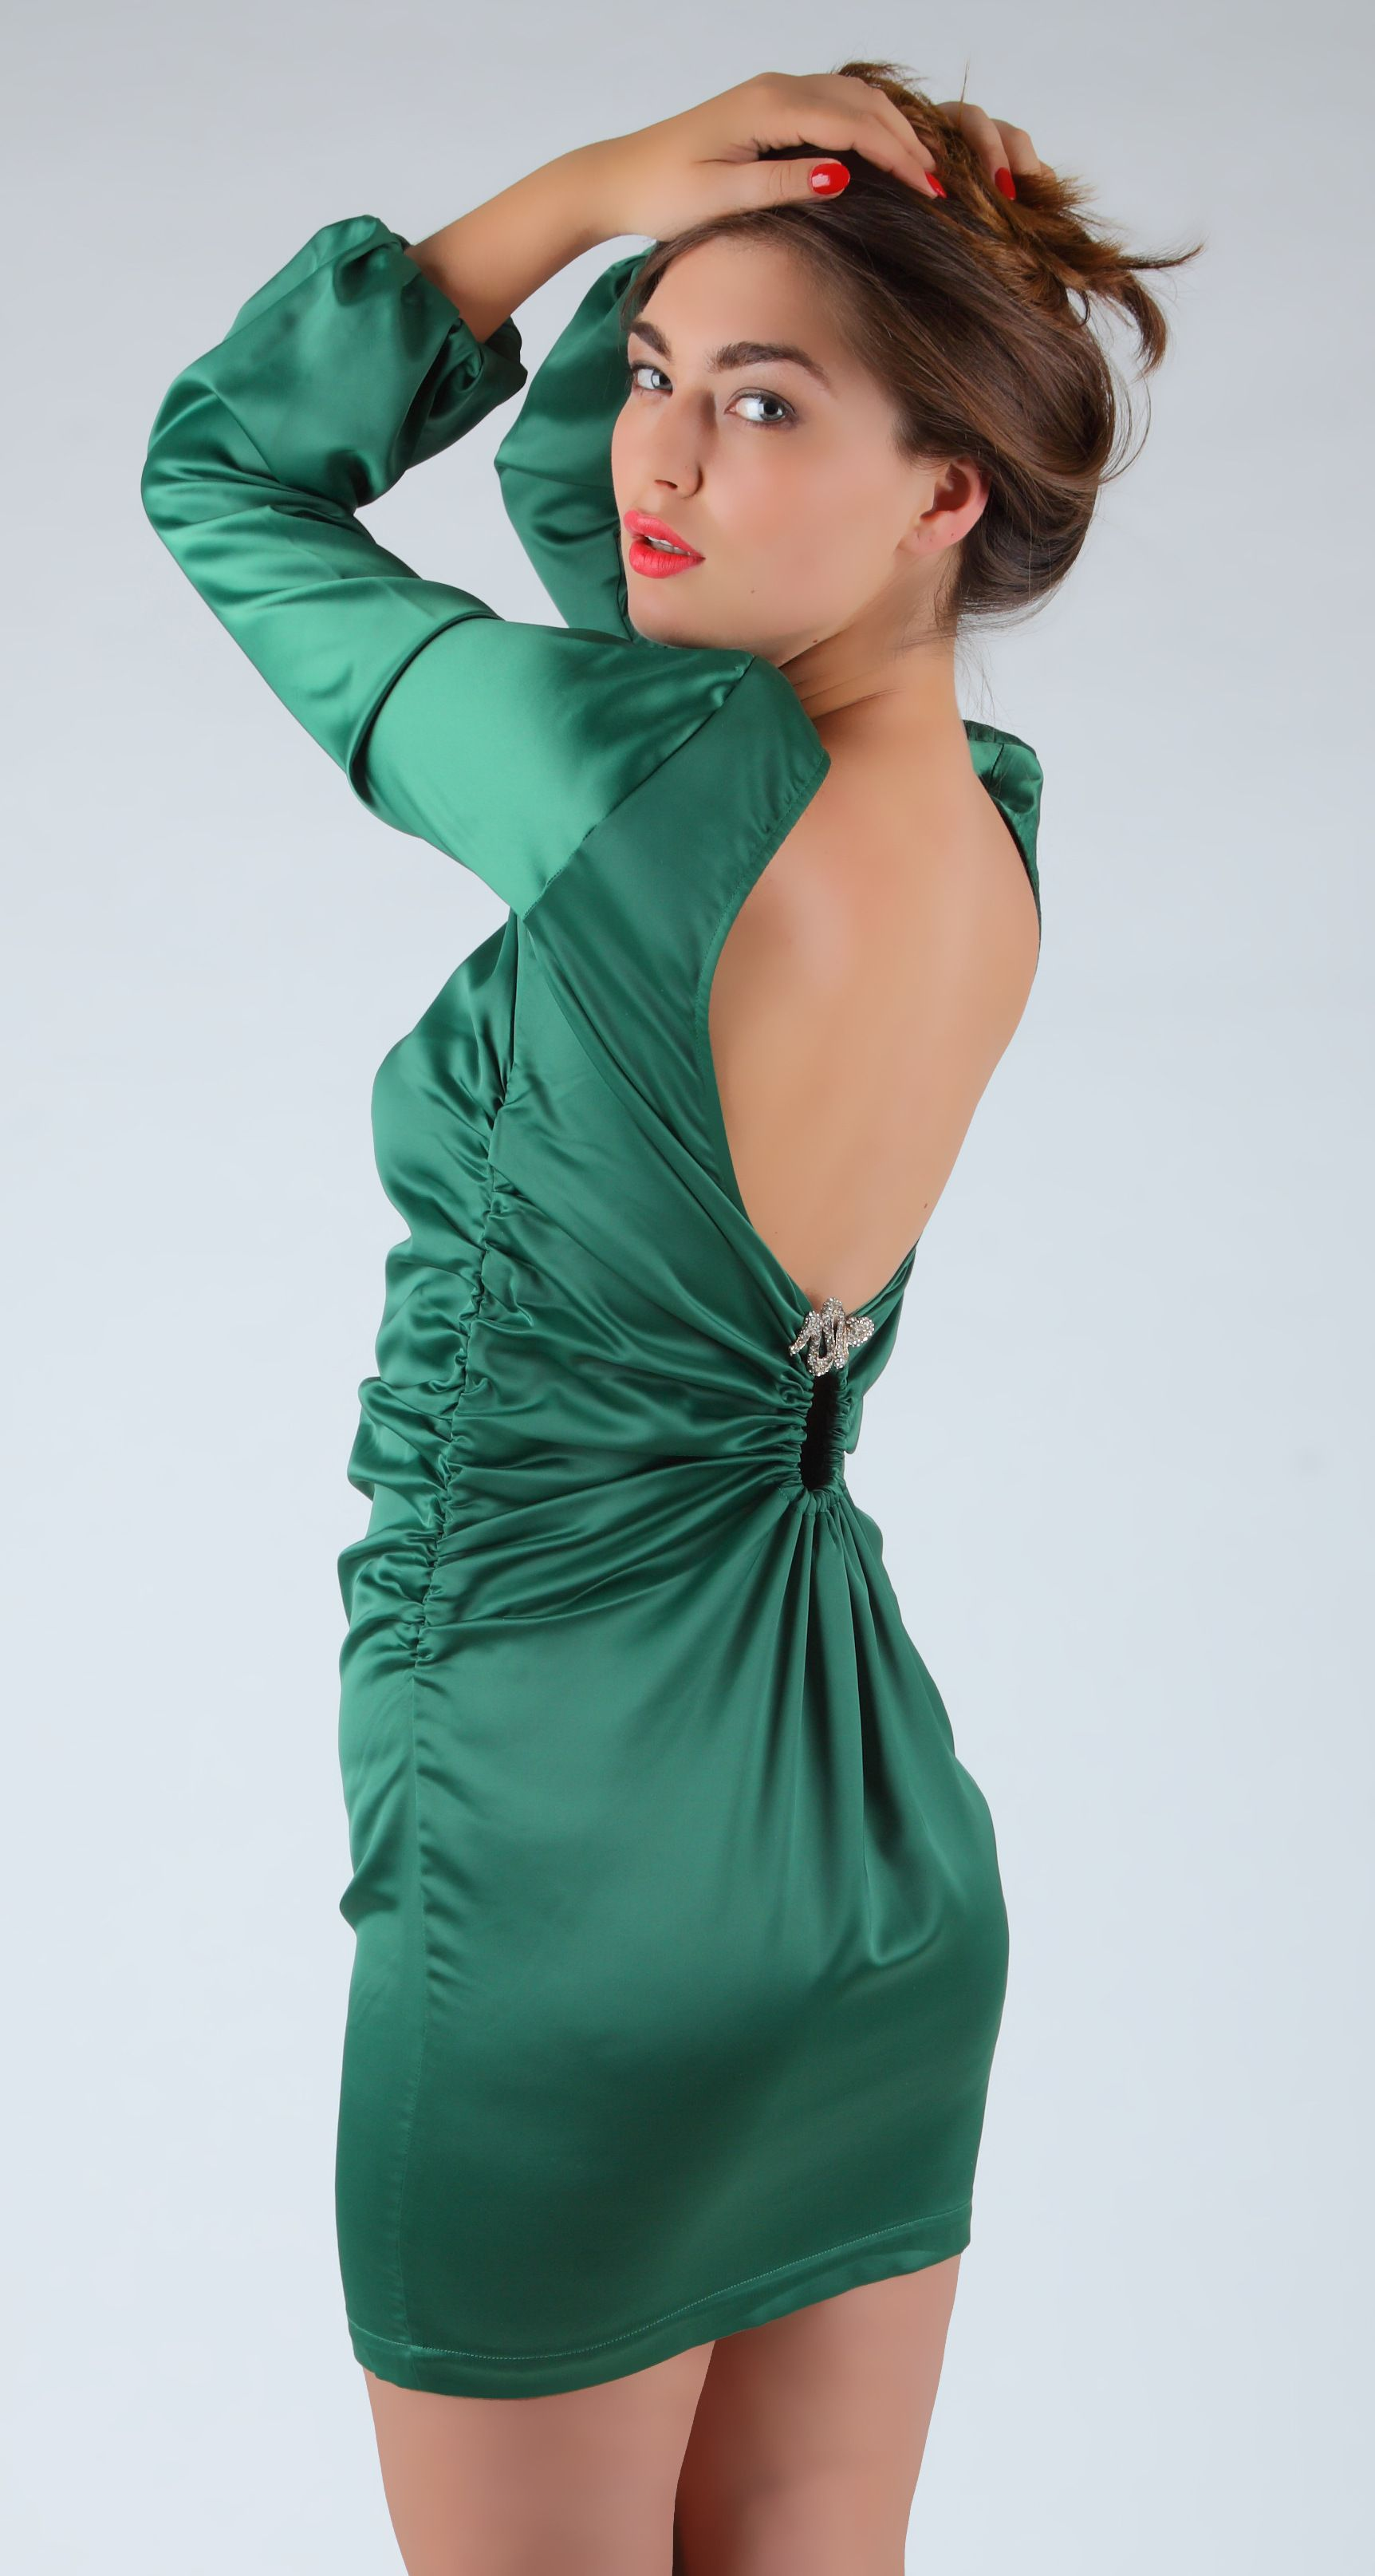 Chic green sexy party dress with ruffles FREE SHIPPING   Messo ...